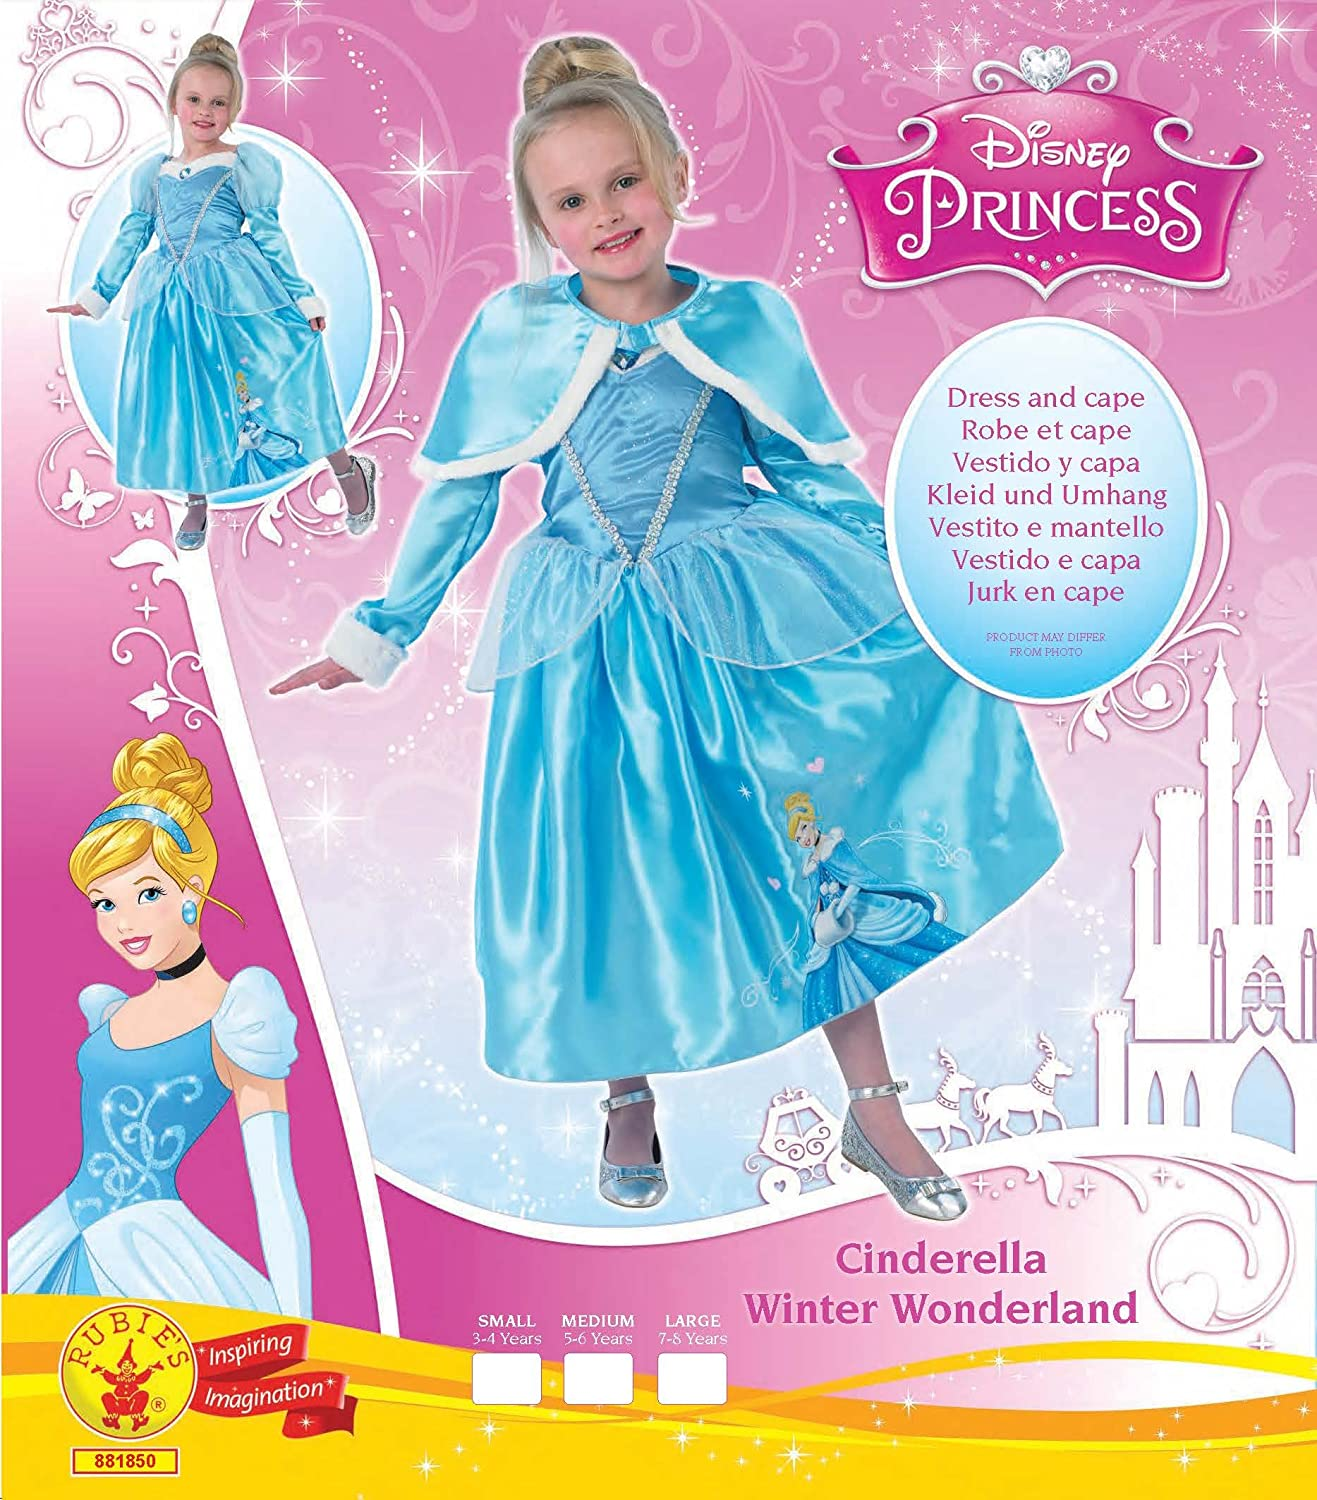 Amazon.com: Disney Princess Cinderella Winter Wonderland Costume: Home Improvement